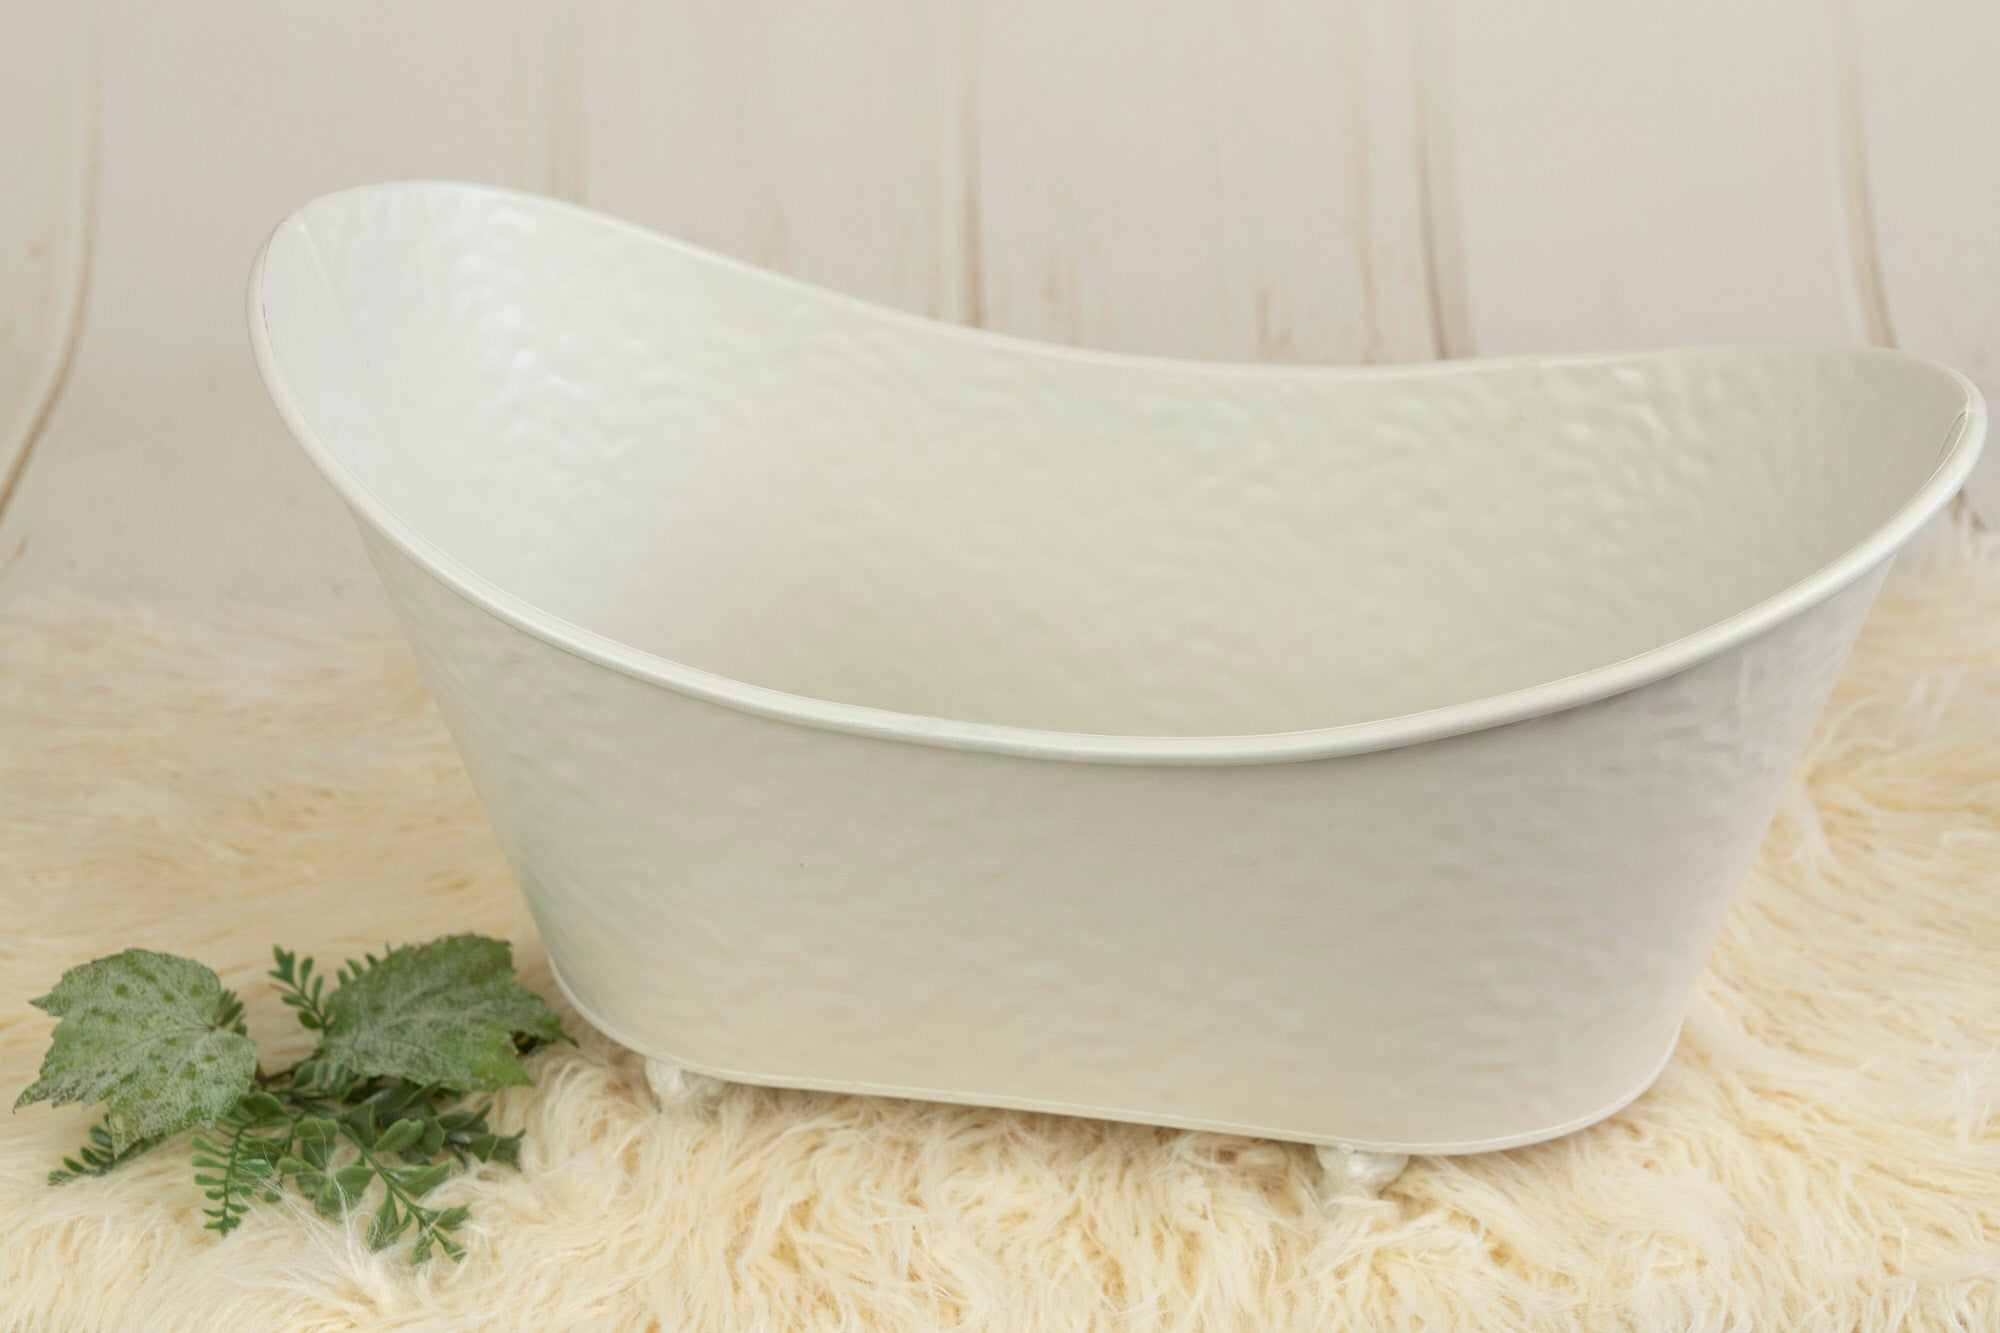 Footed Vintage Bathtub - Bumpy Textured - White